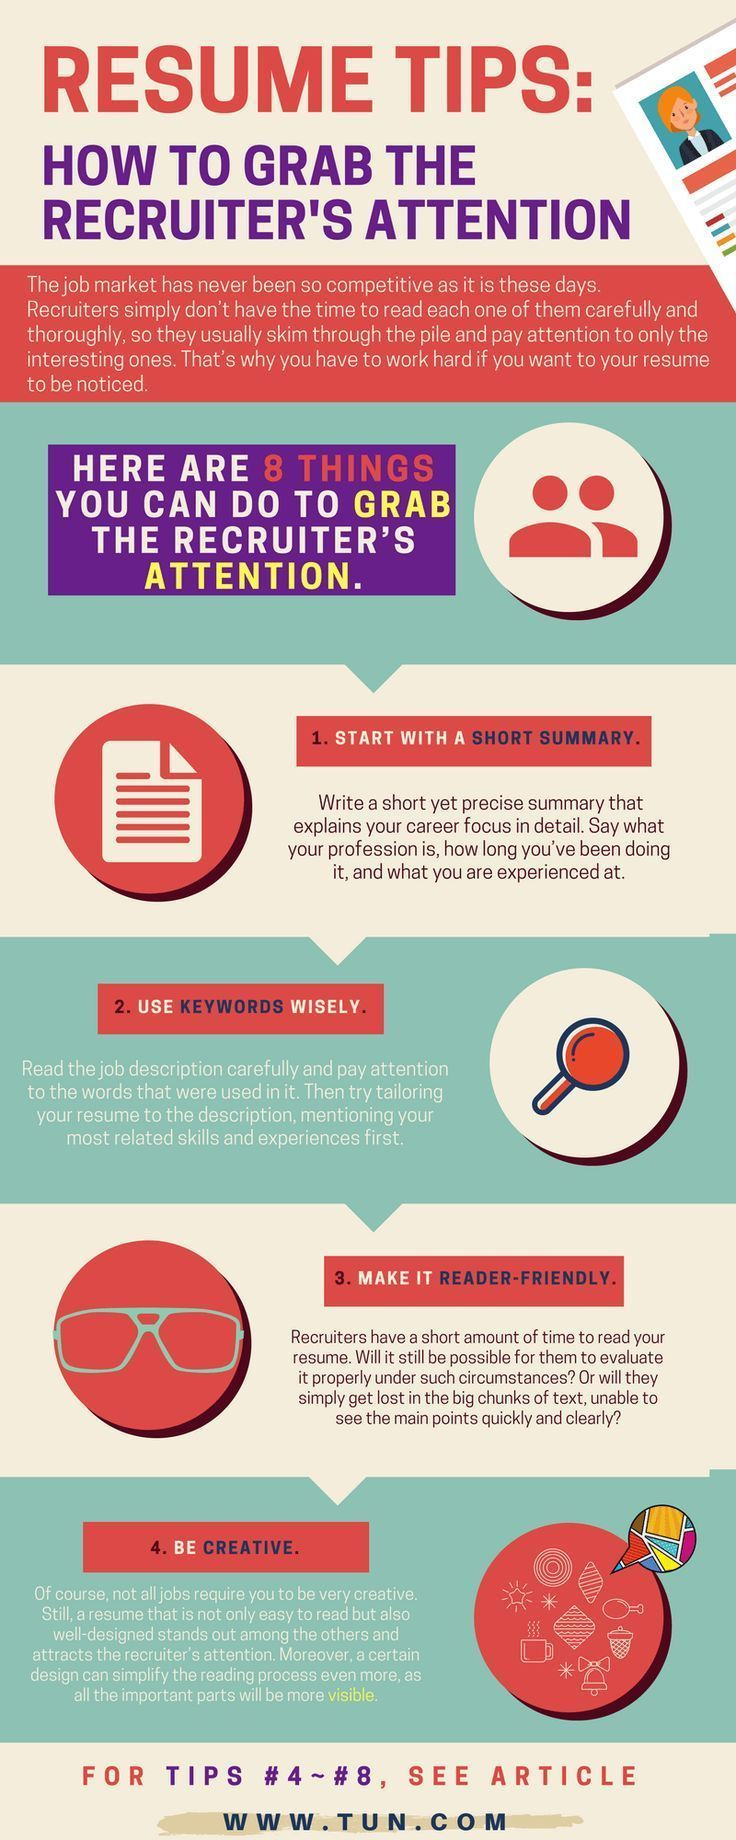 8 things you can do to grab the recruiter's attention